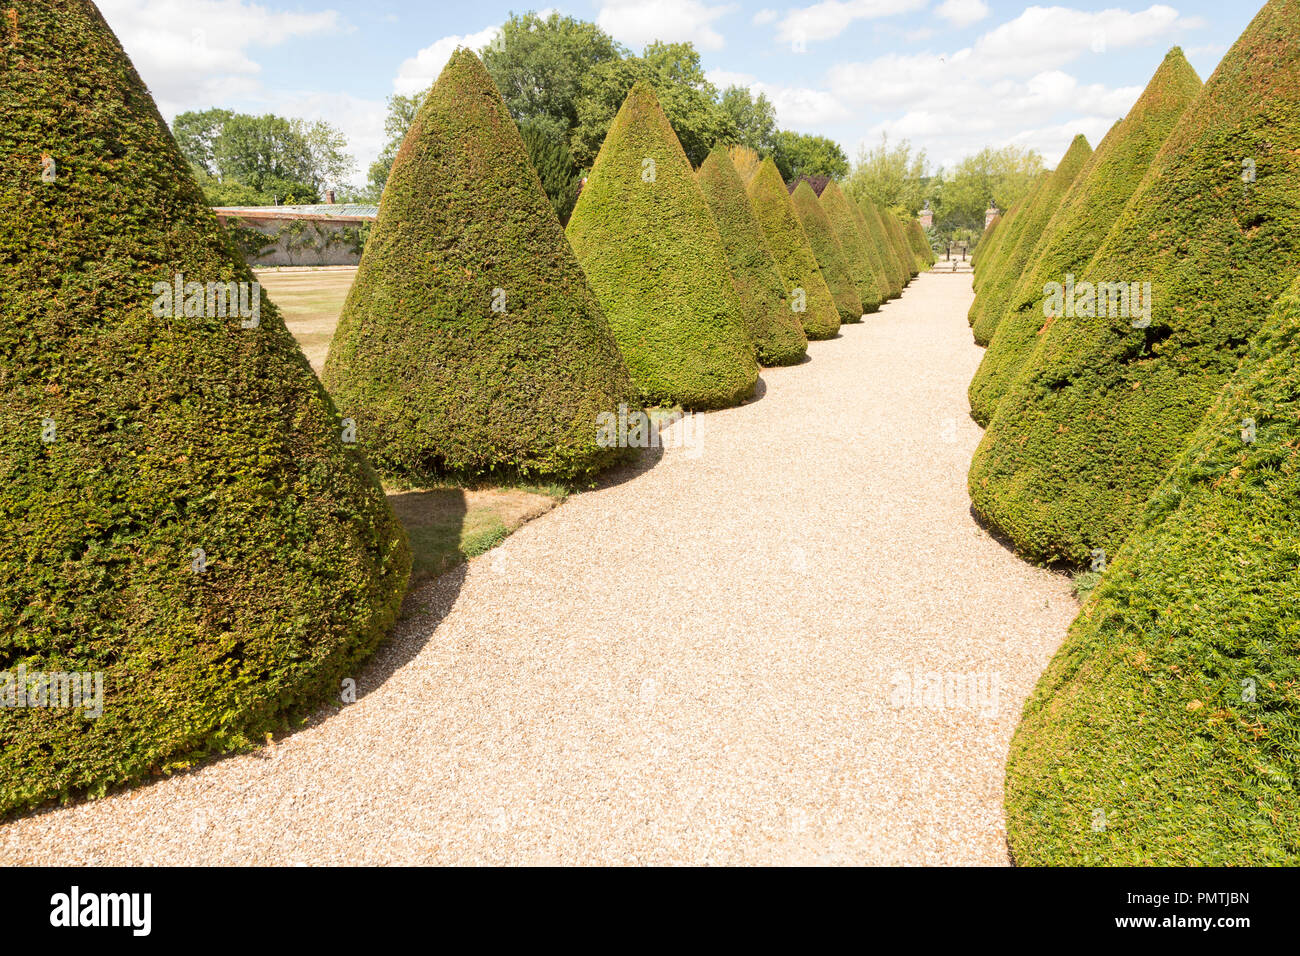 Topiary pathway in garden Littlecote House Hotel, Hungerford, Berkshire, England, UK - Stock Image